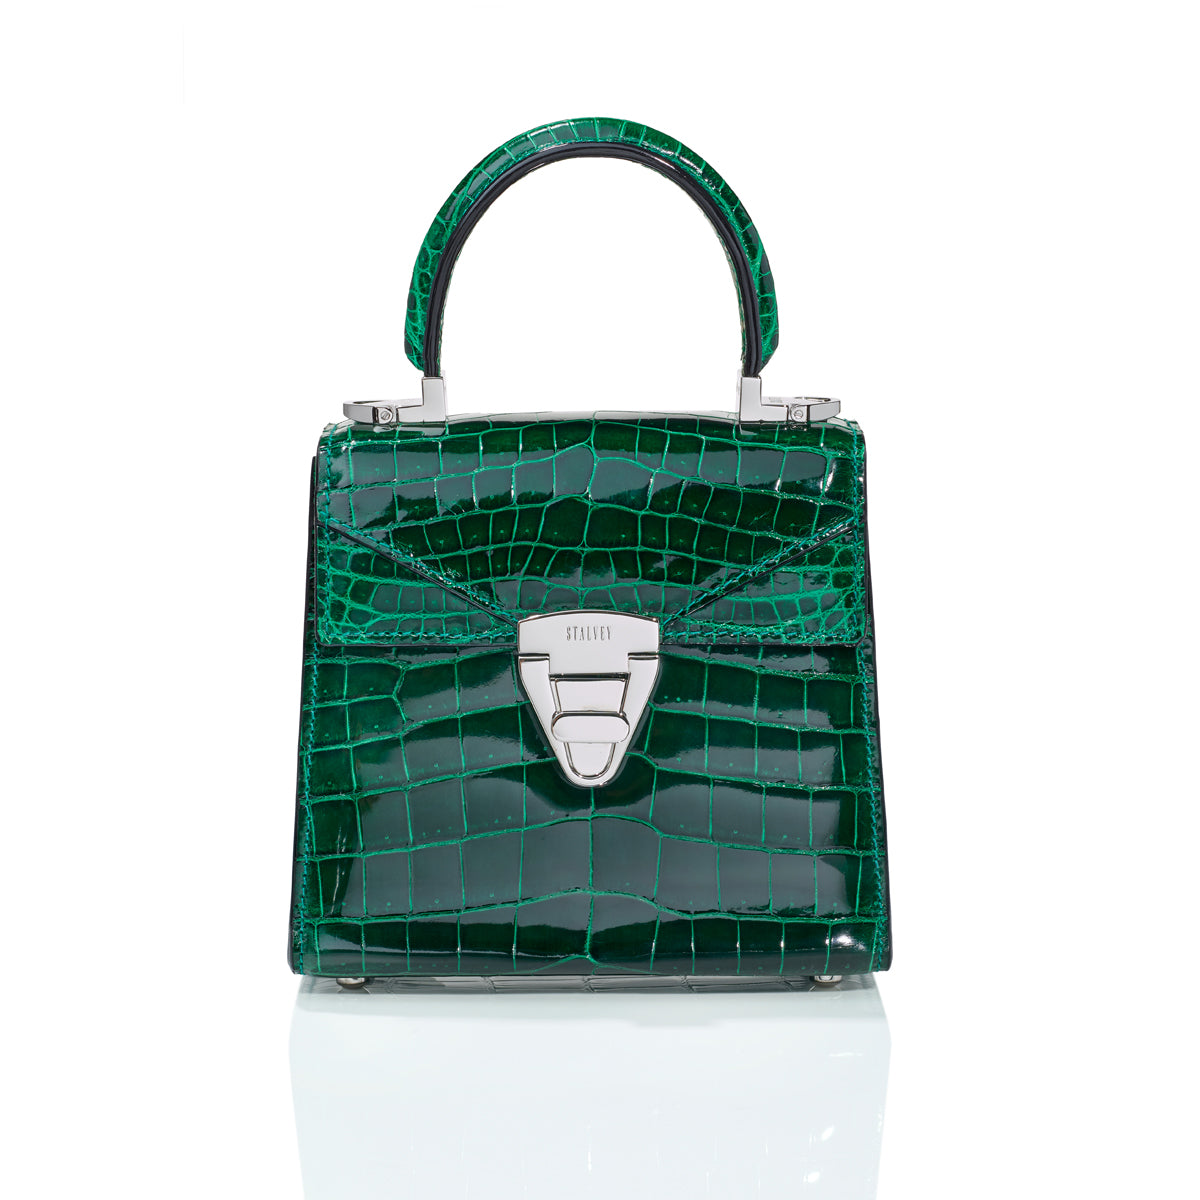 Trapezoid 1.55 Mini - Emerald Green Alligator